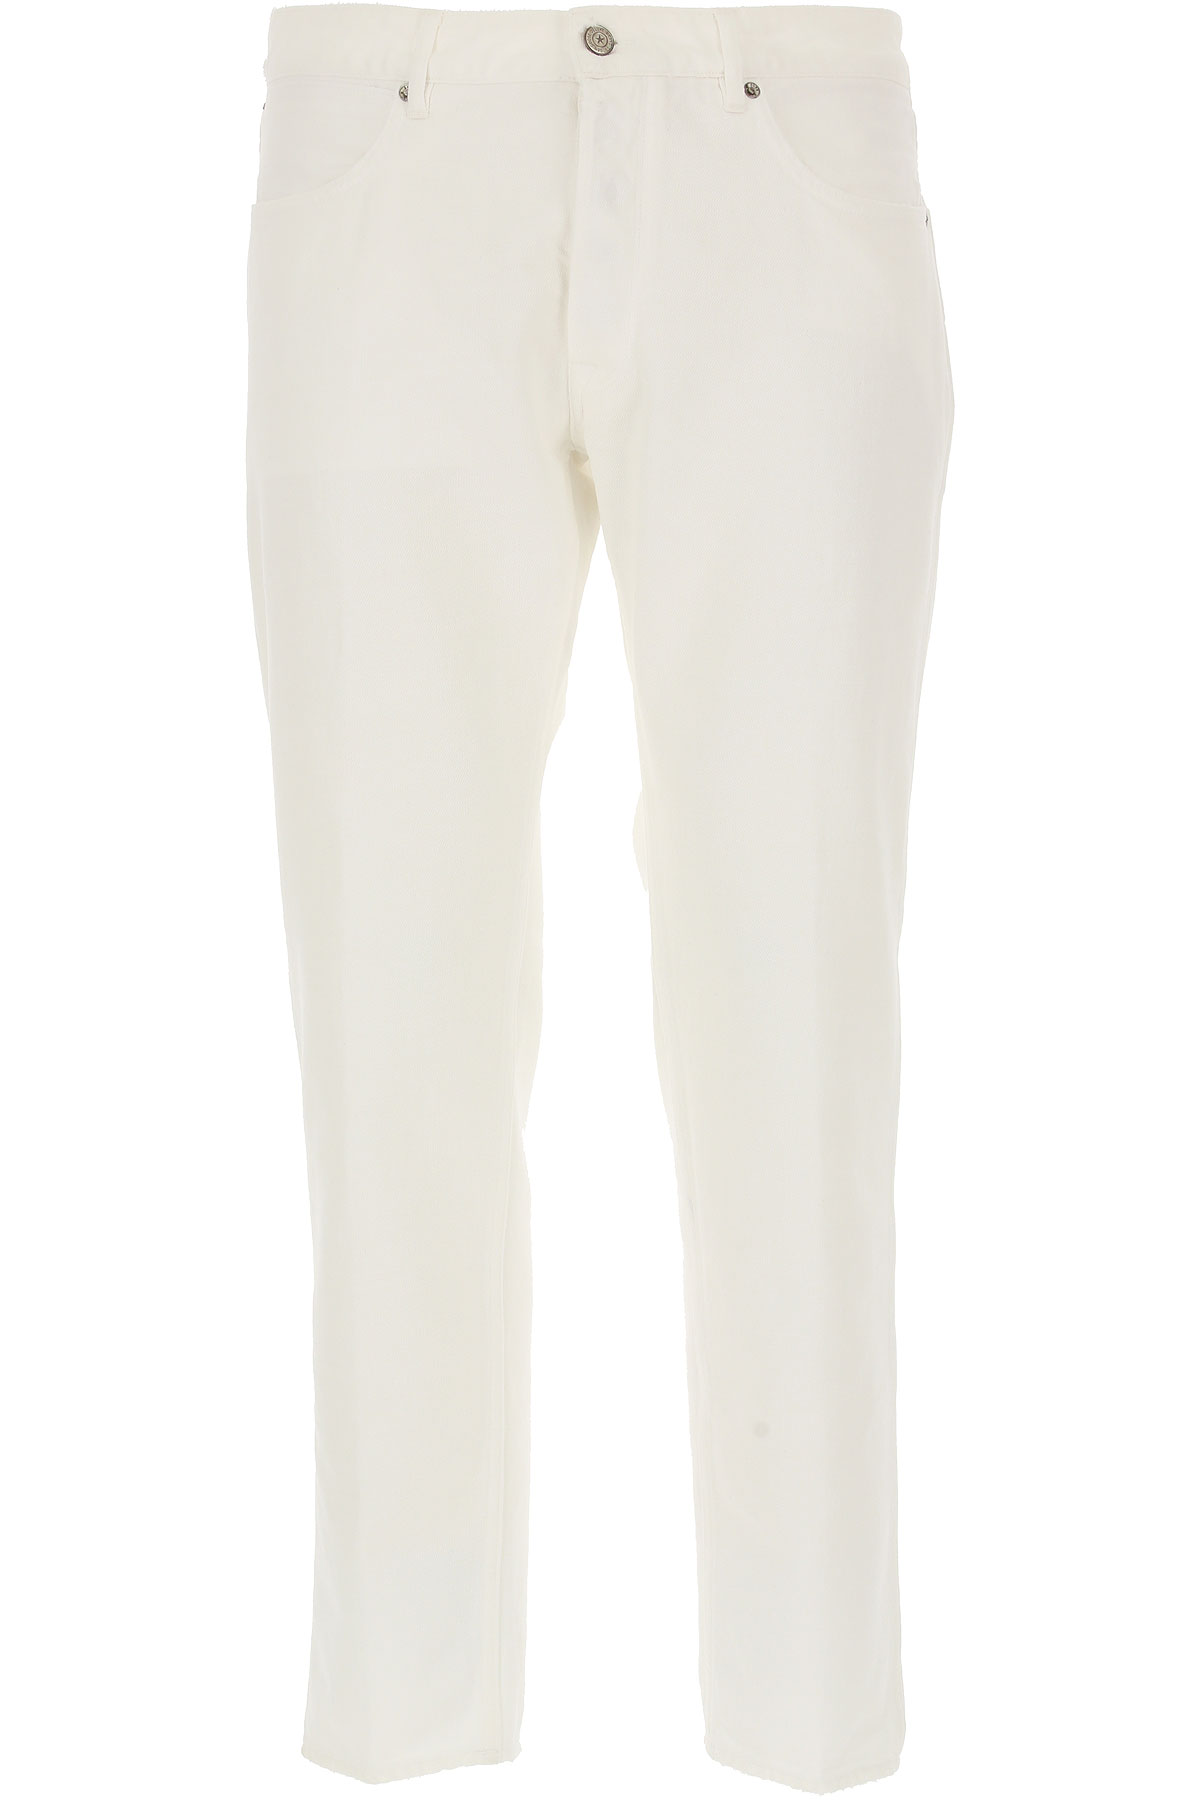 Golden Goose Jeans, White, Cotton, 2017, 30 31 32 33 34 36